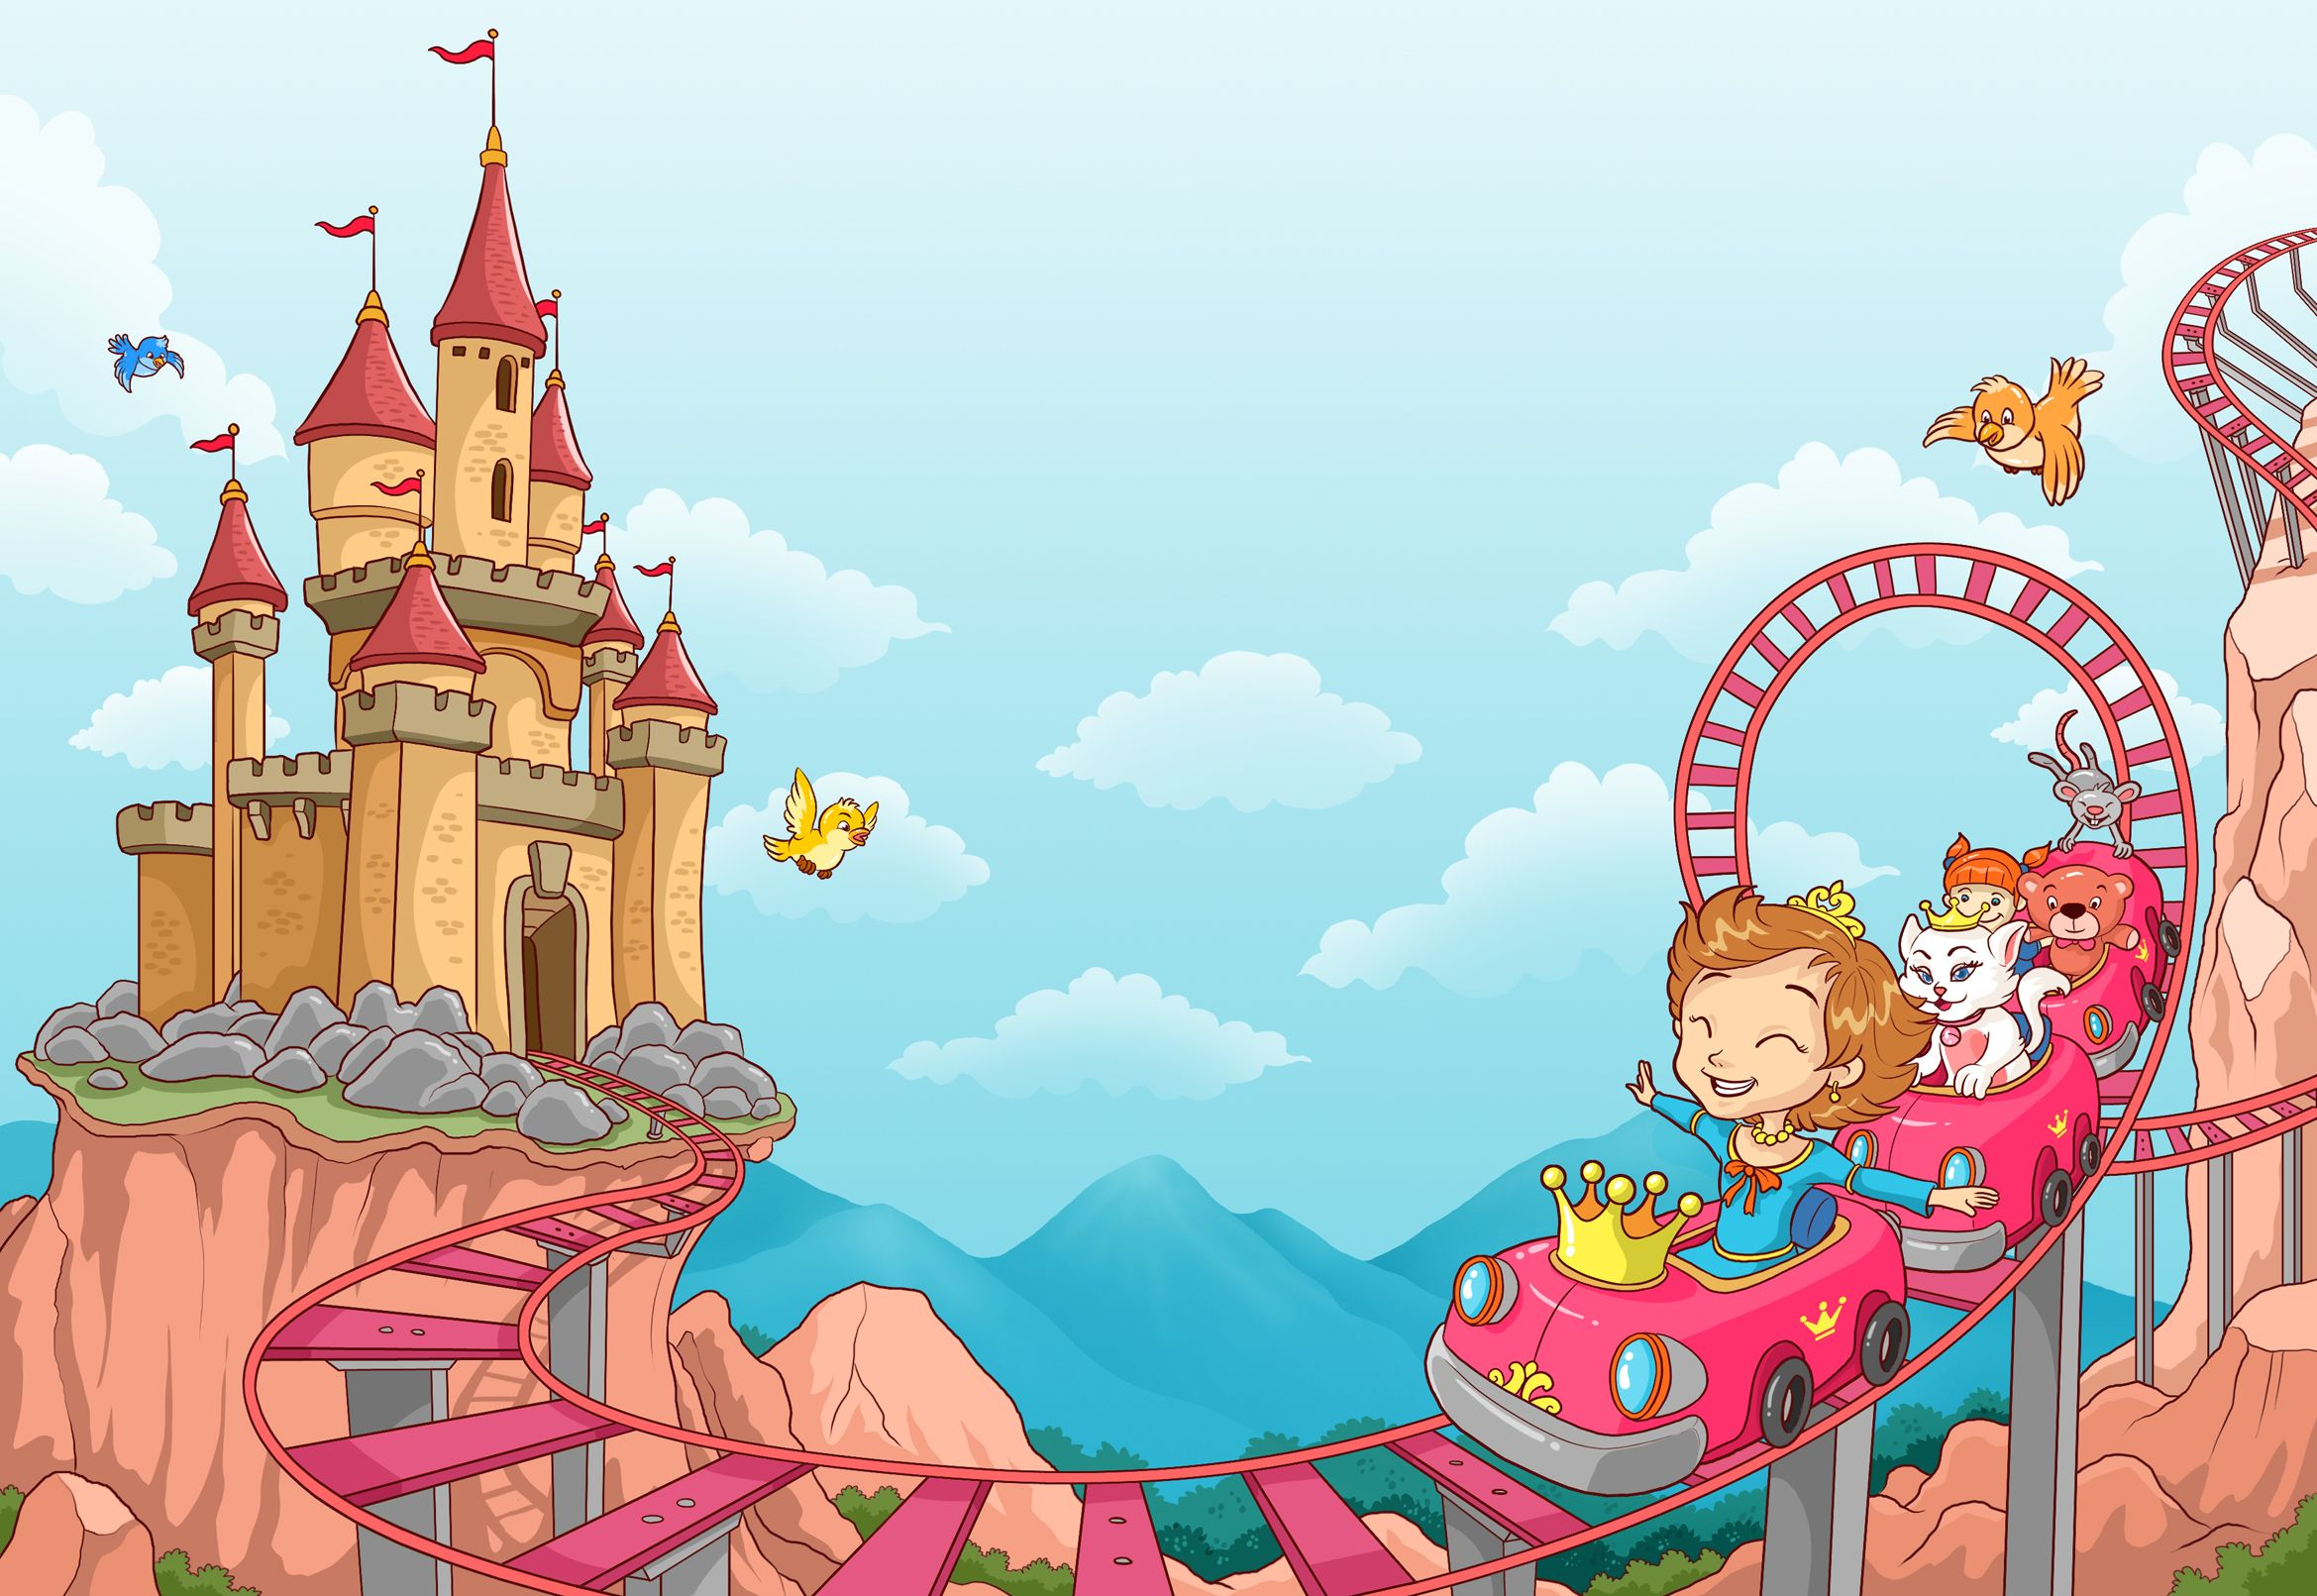 If I was a princess I'd have a palace on a hill...